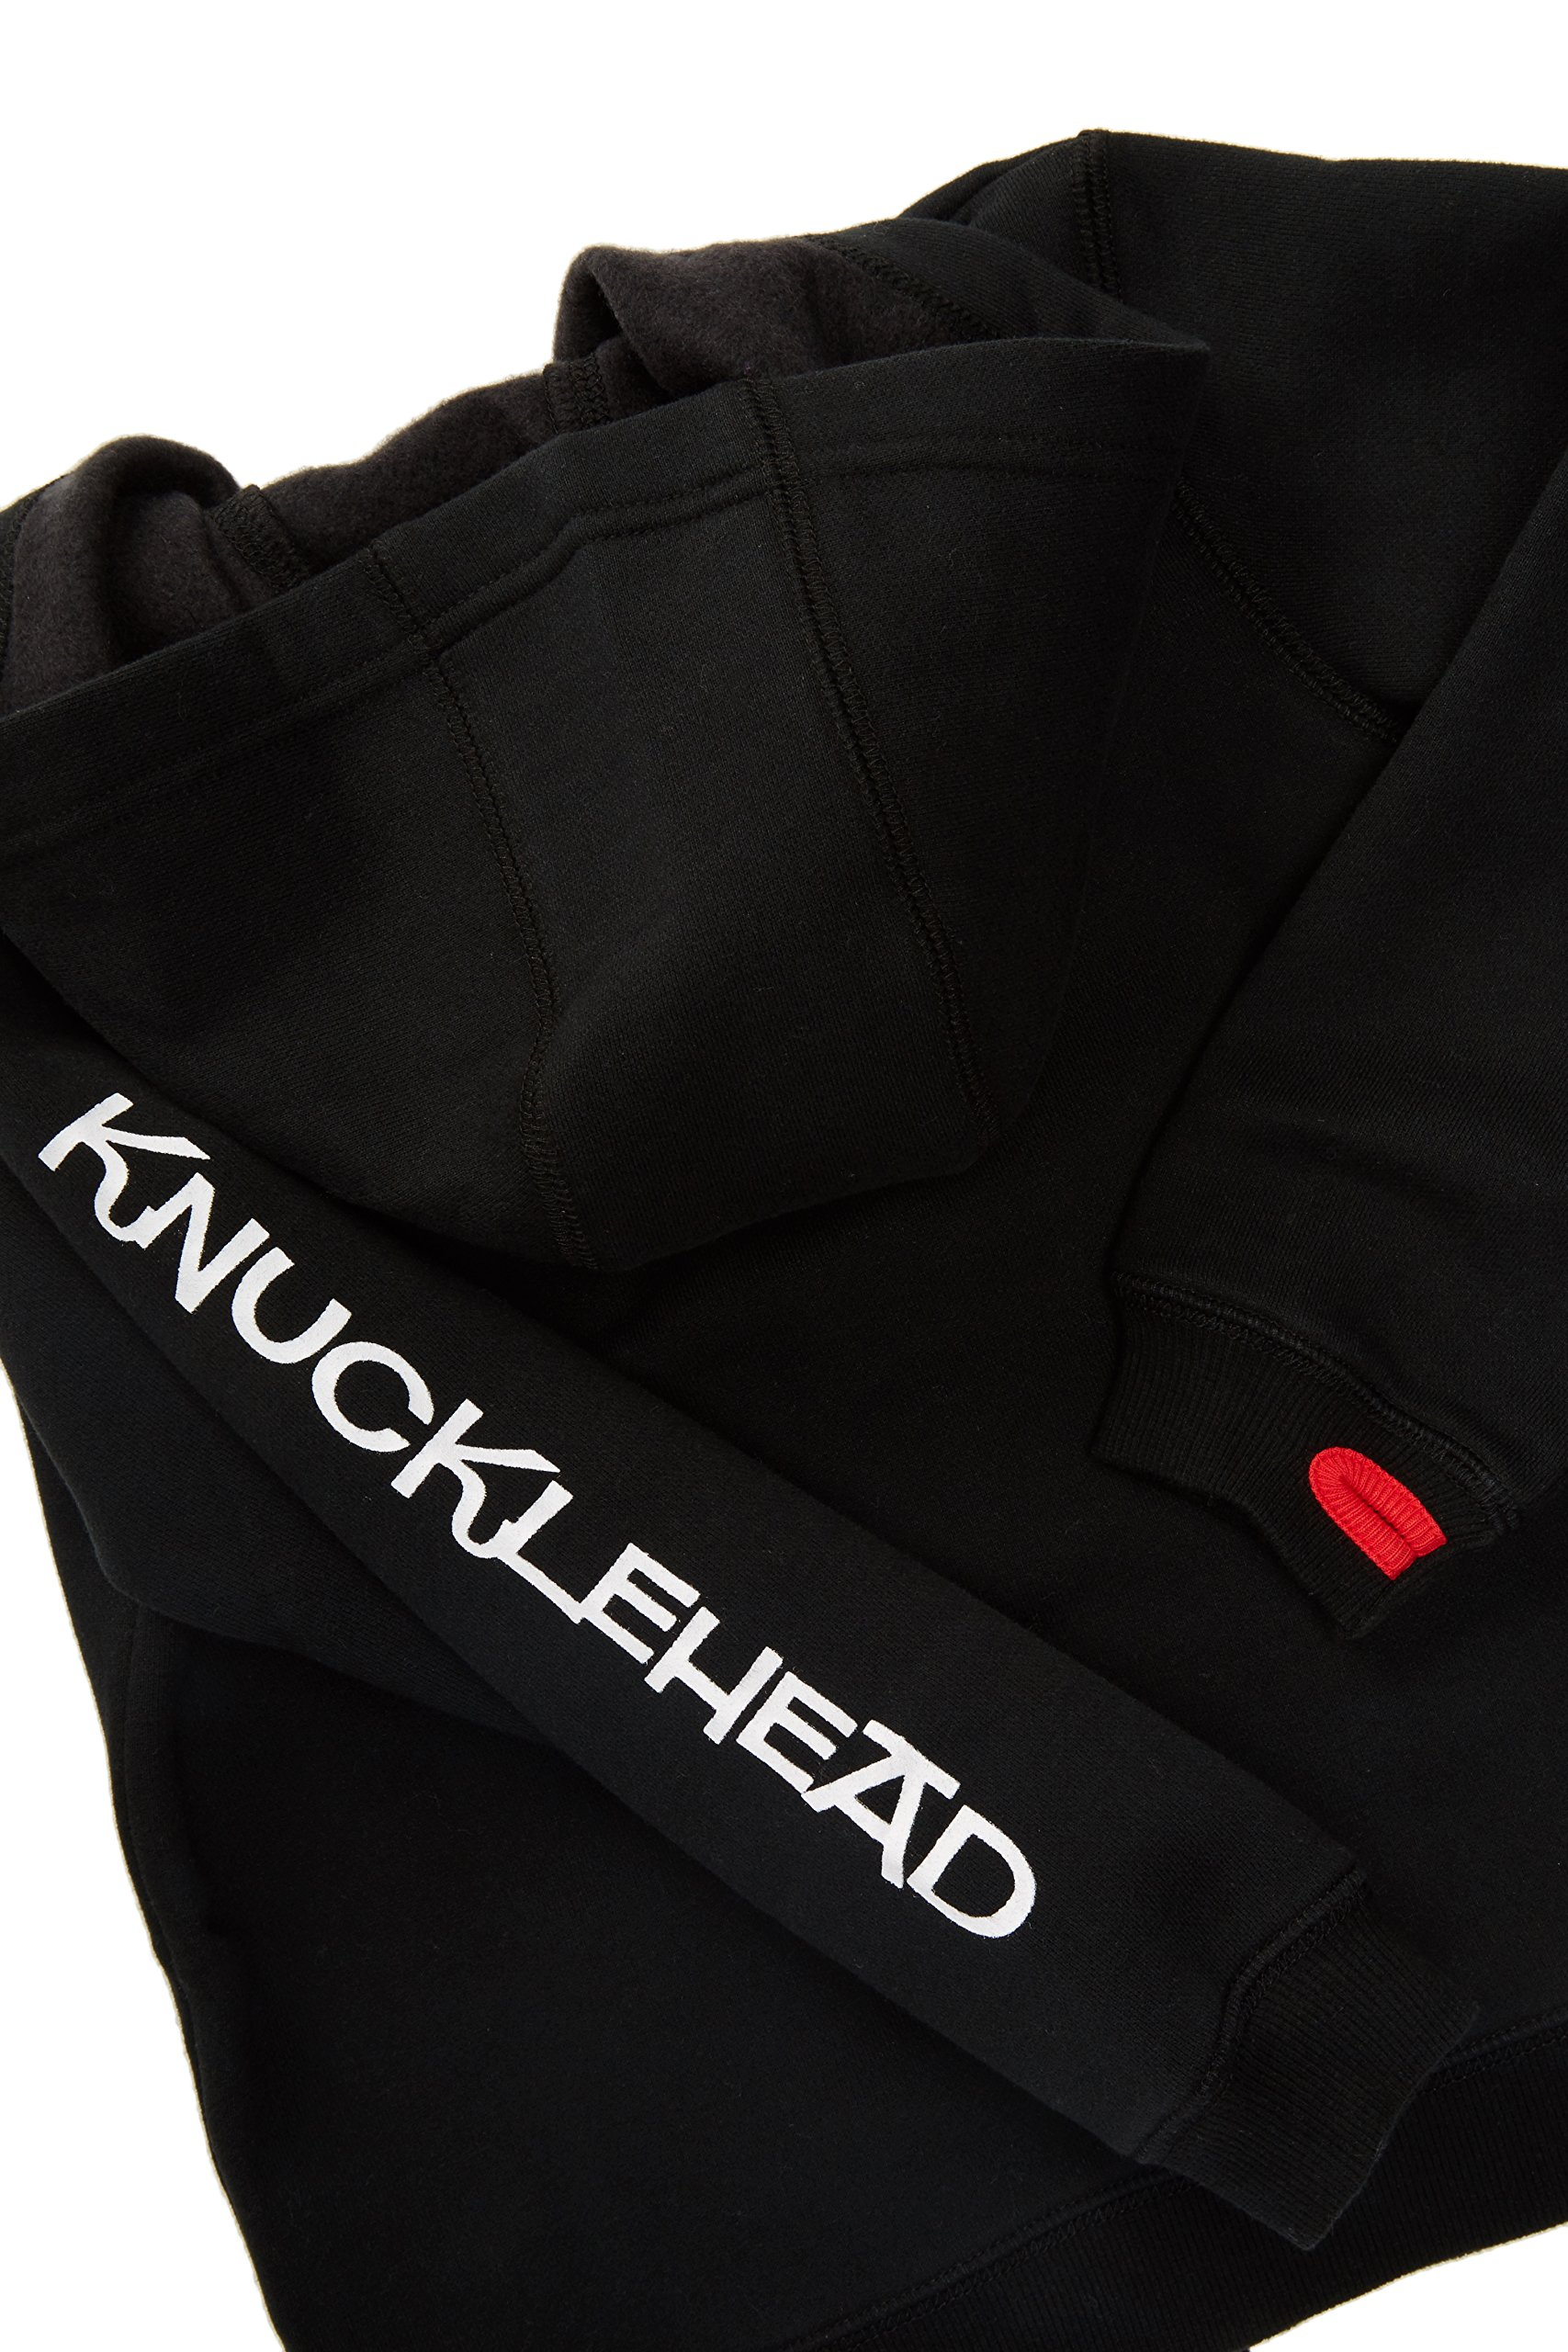 Born to Love Knuckleheads - Toddler Hooded Sweatshirt Boys Black Logo Pullover Zip Up Hoodie (8T) by Born to Love (Image #5)